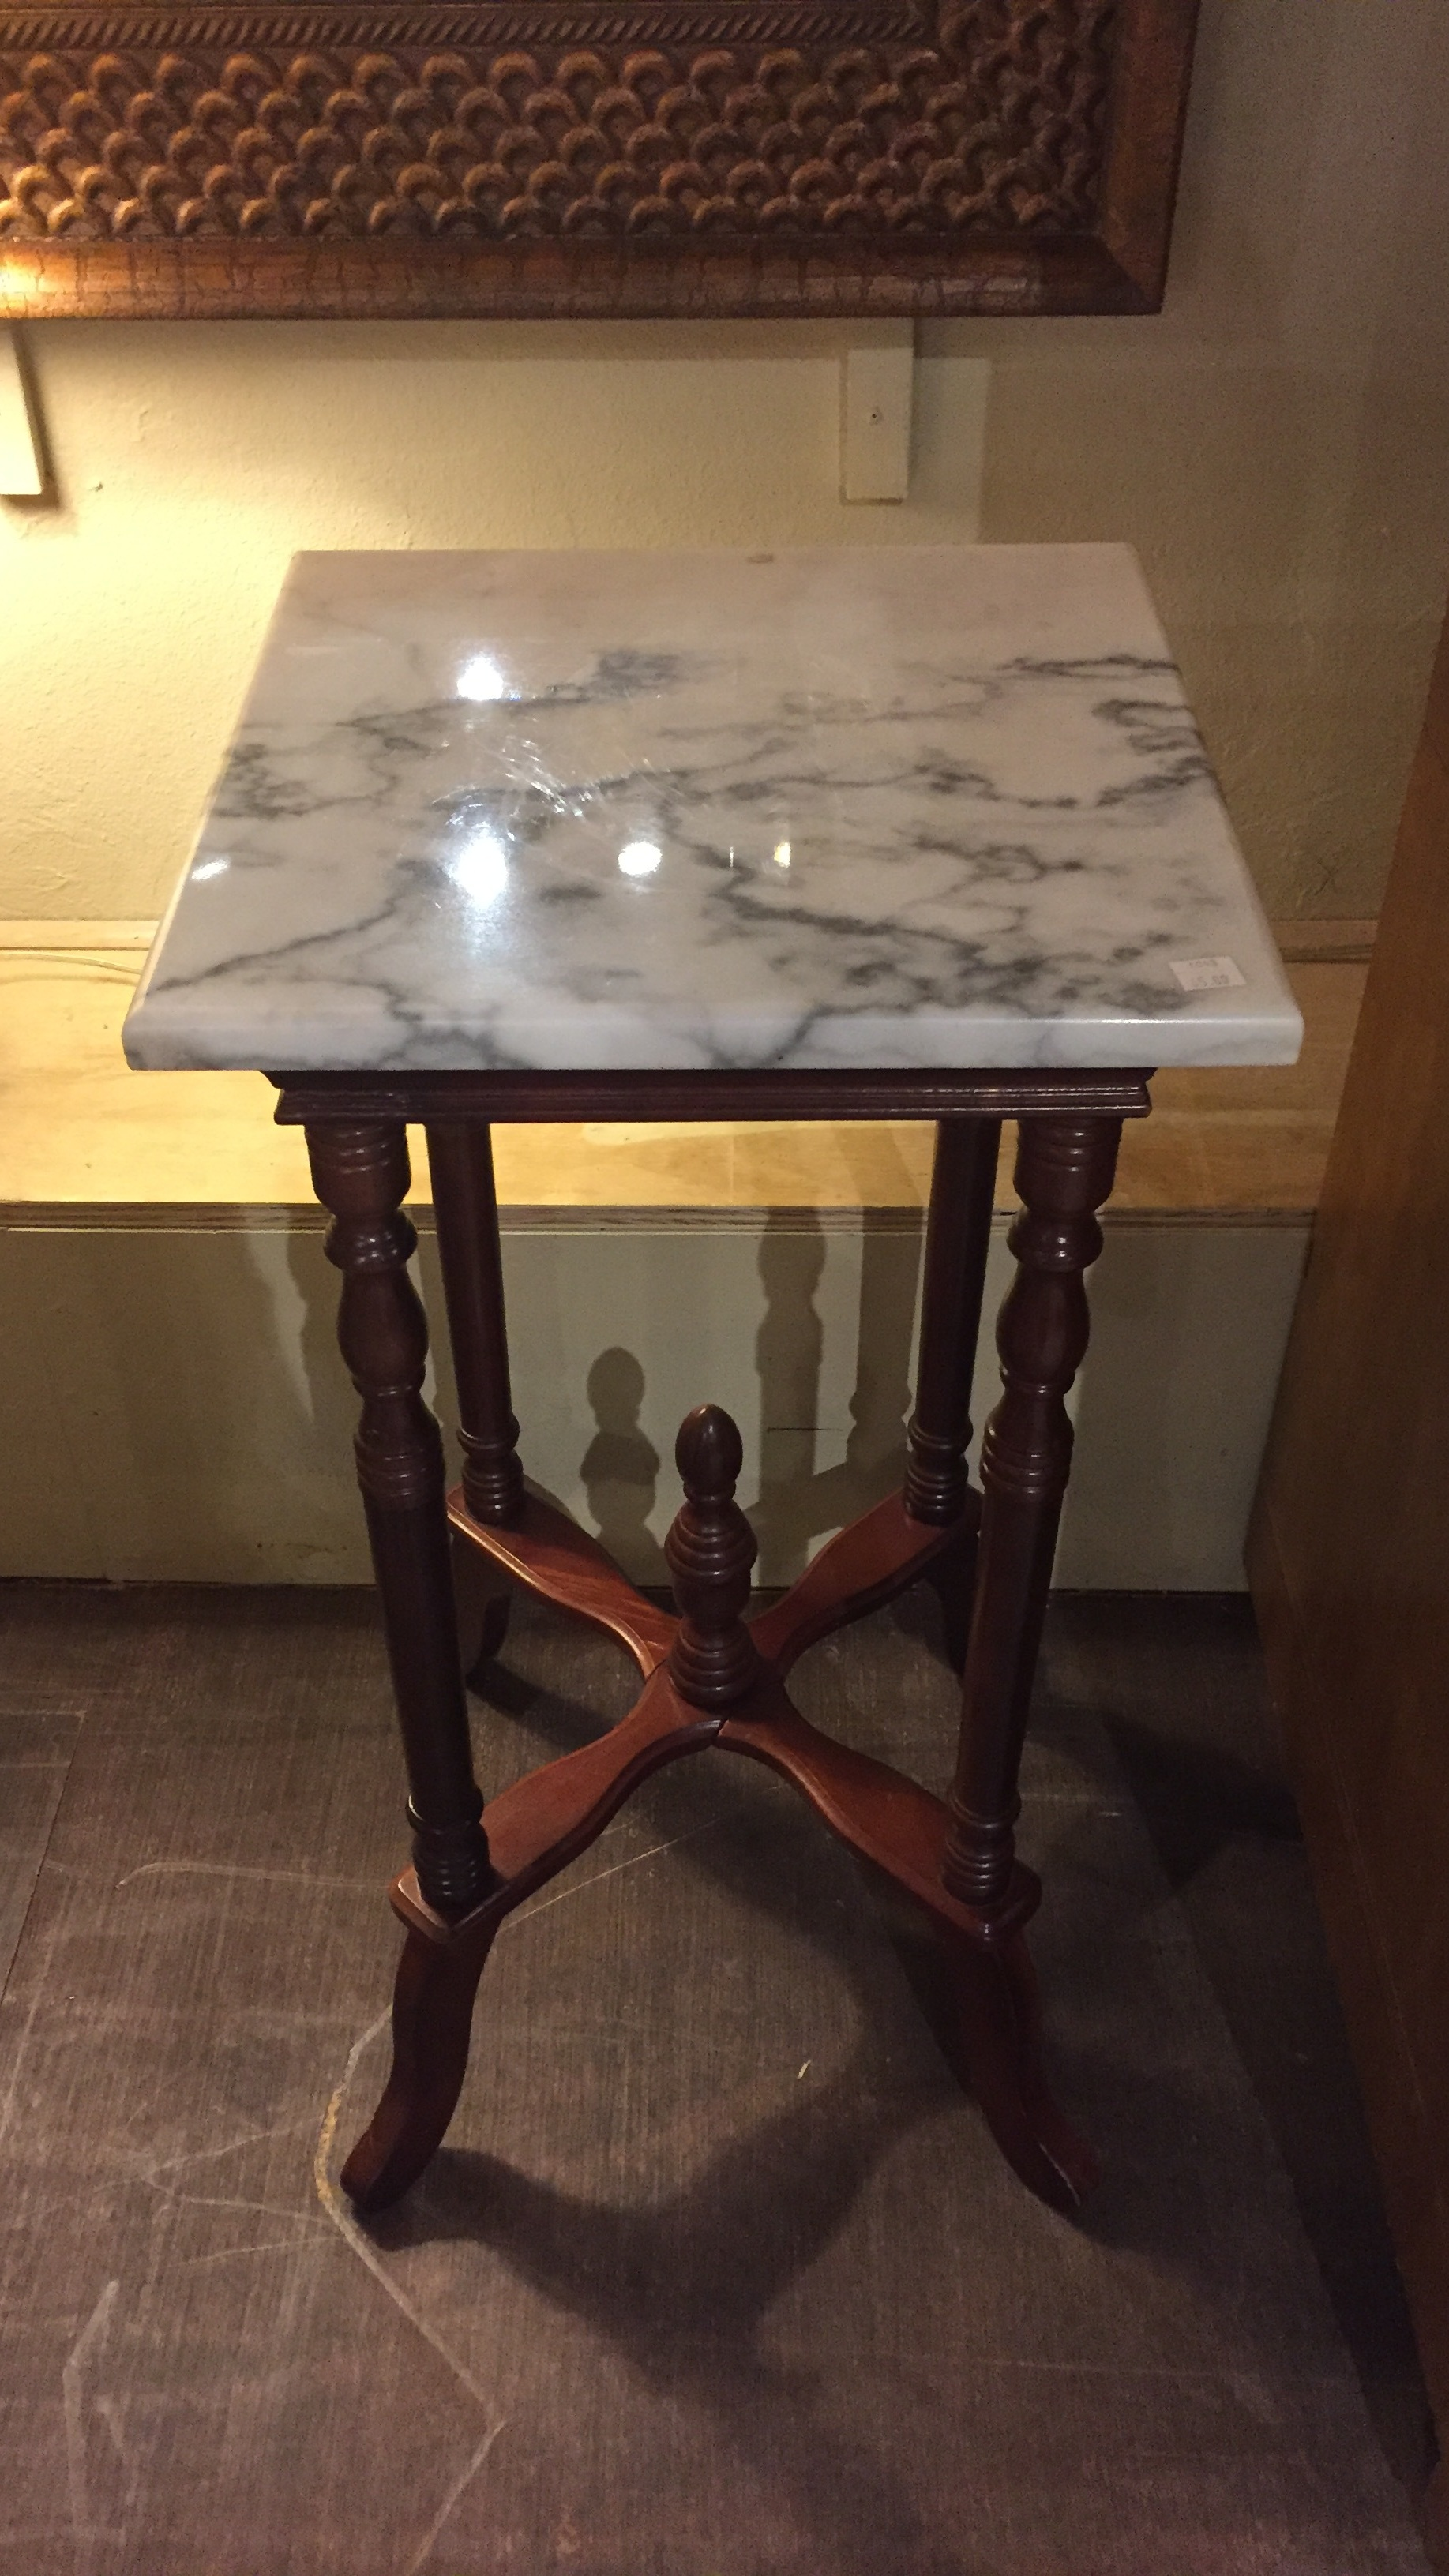 Marble Top Lamp Table $59.95 - C1043 22506